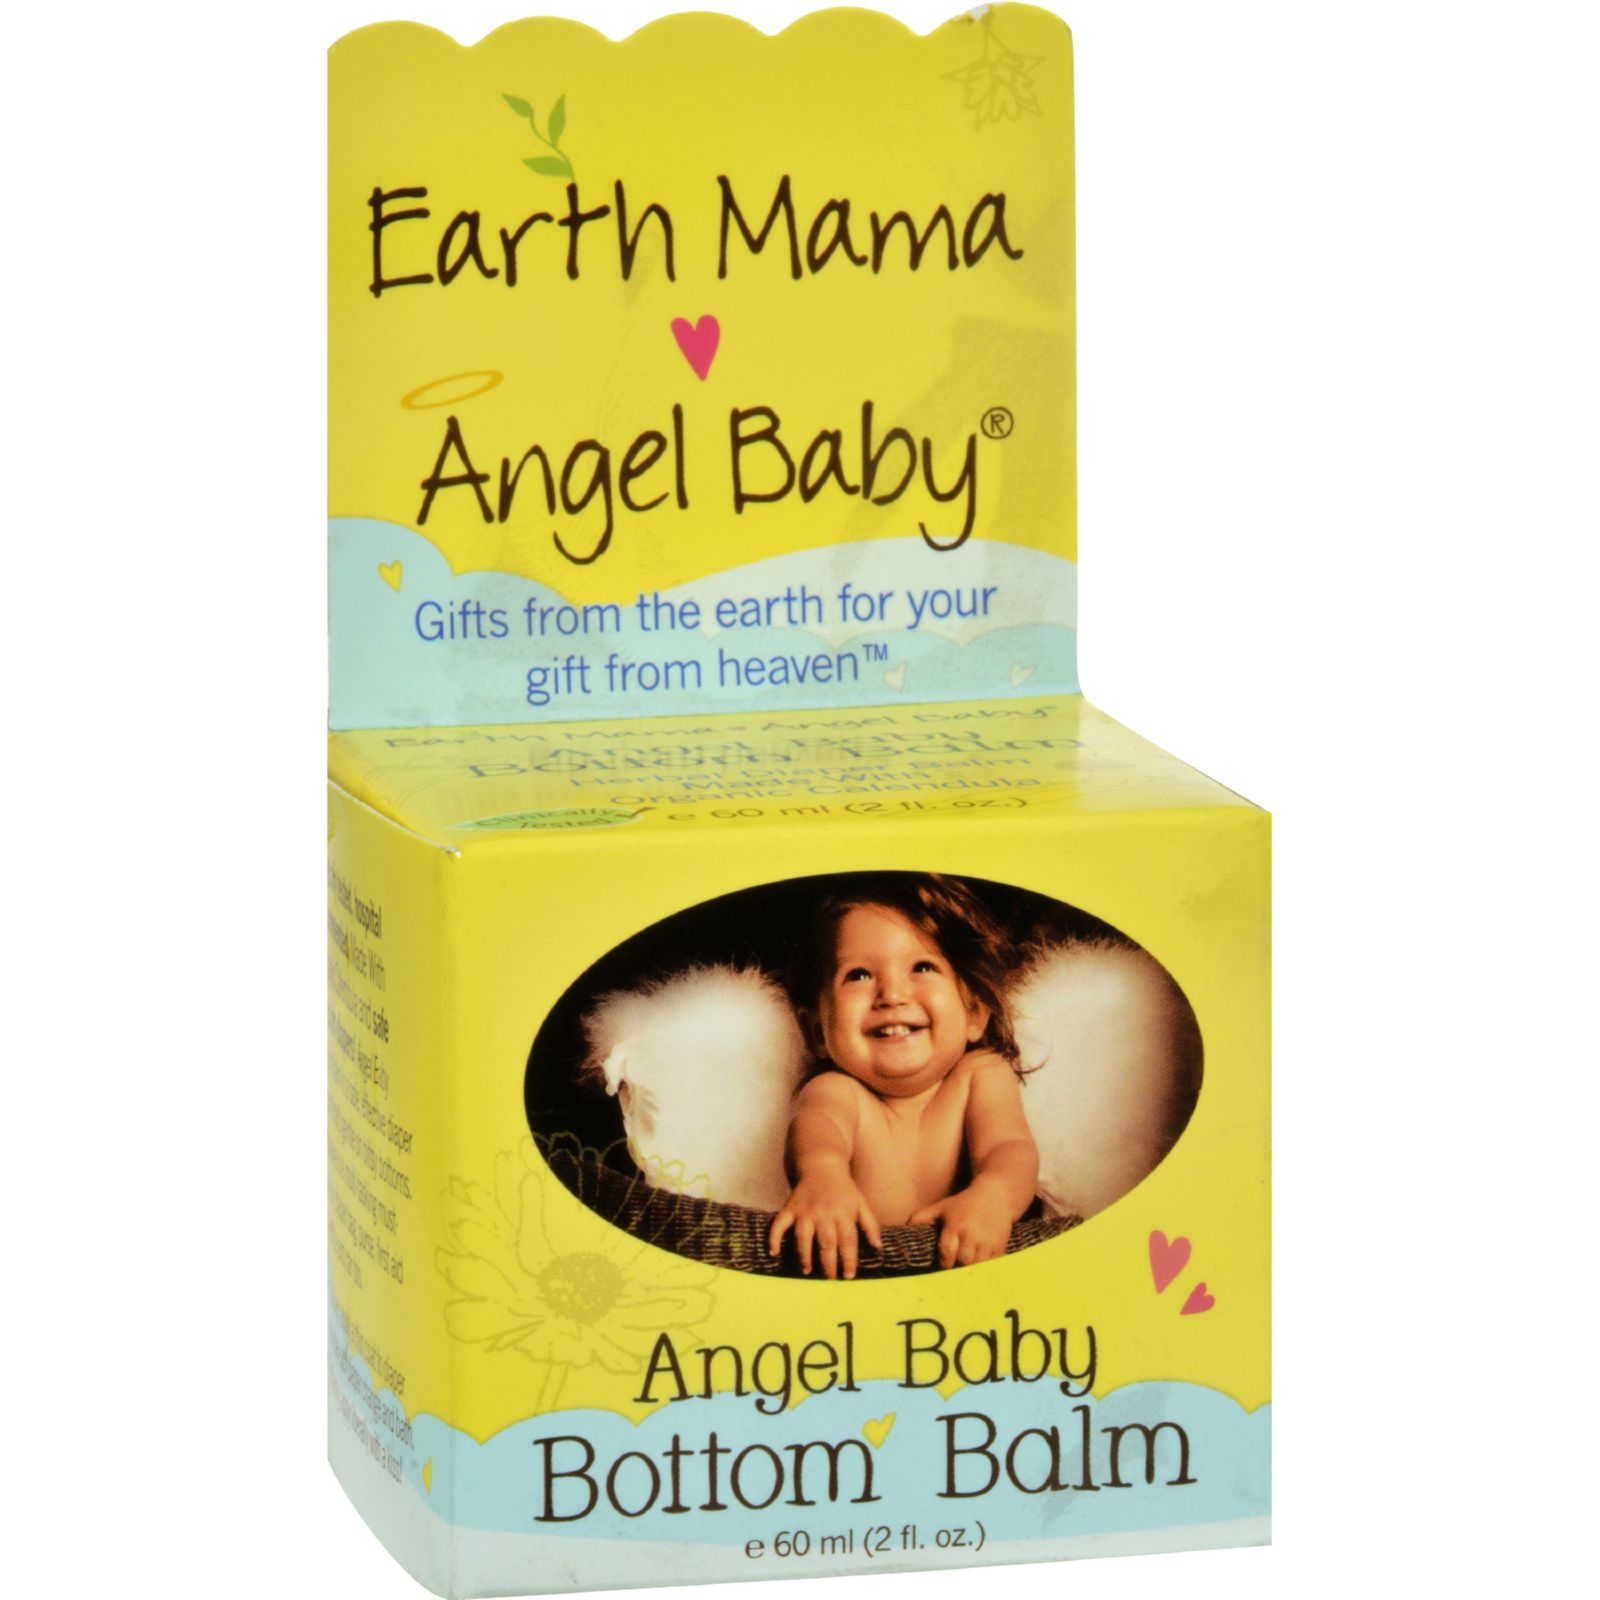 Angel Baby Bottom Balm 60 ml. (2 fl. oz.)